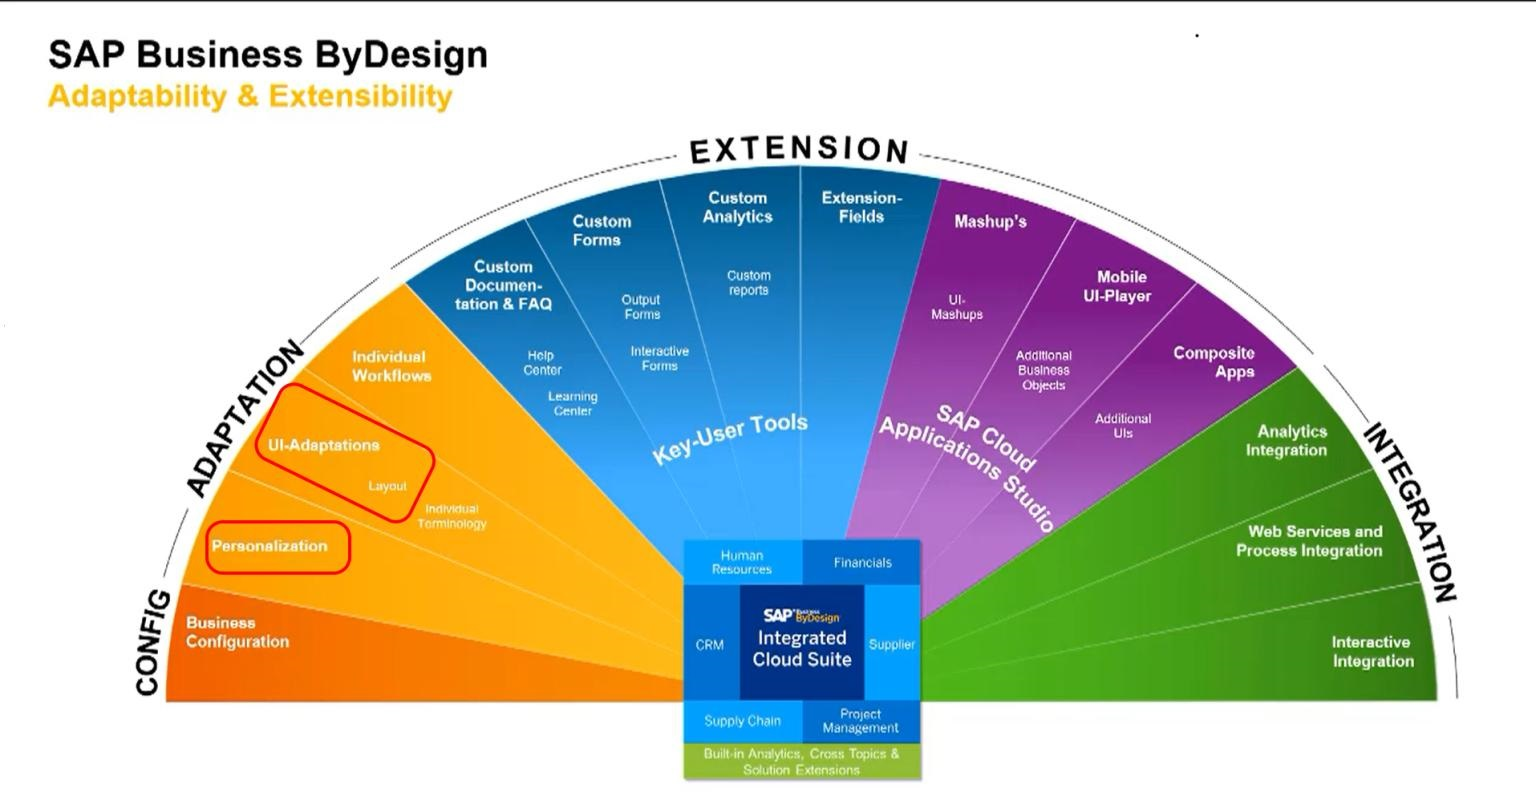 Personalisation in SAP Business ByDesign